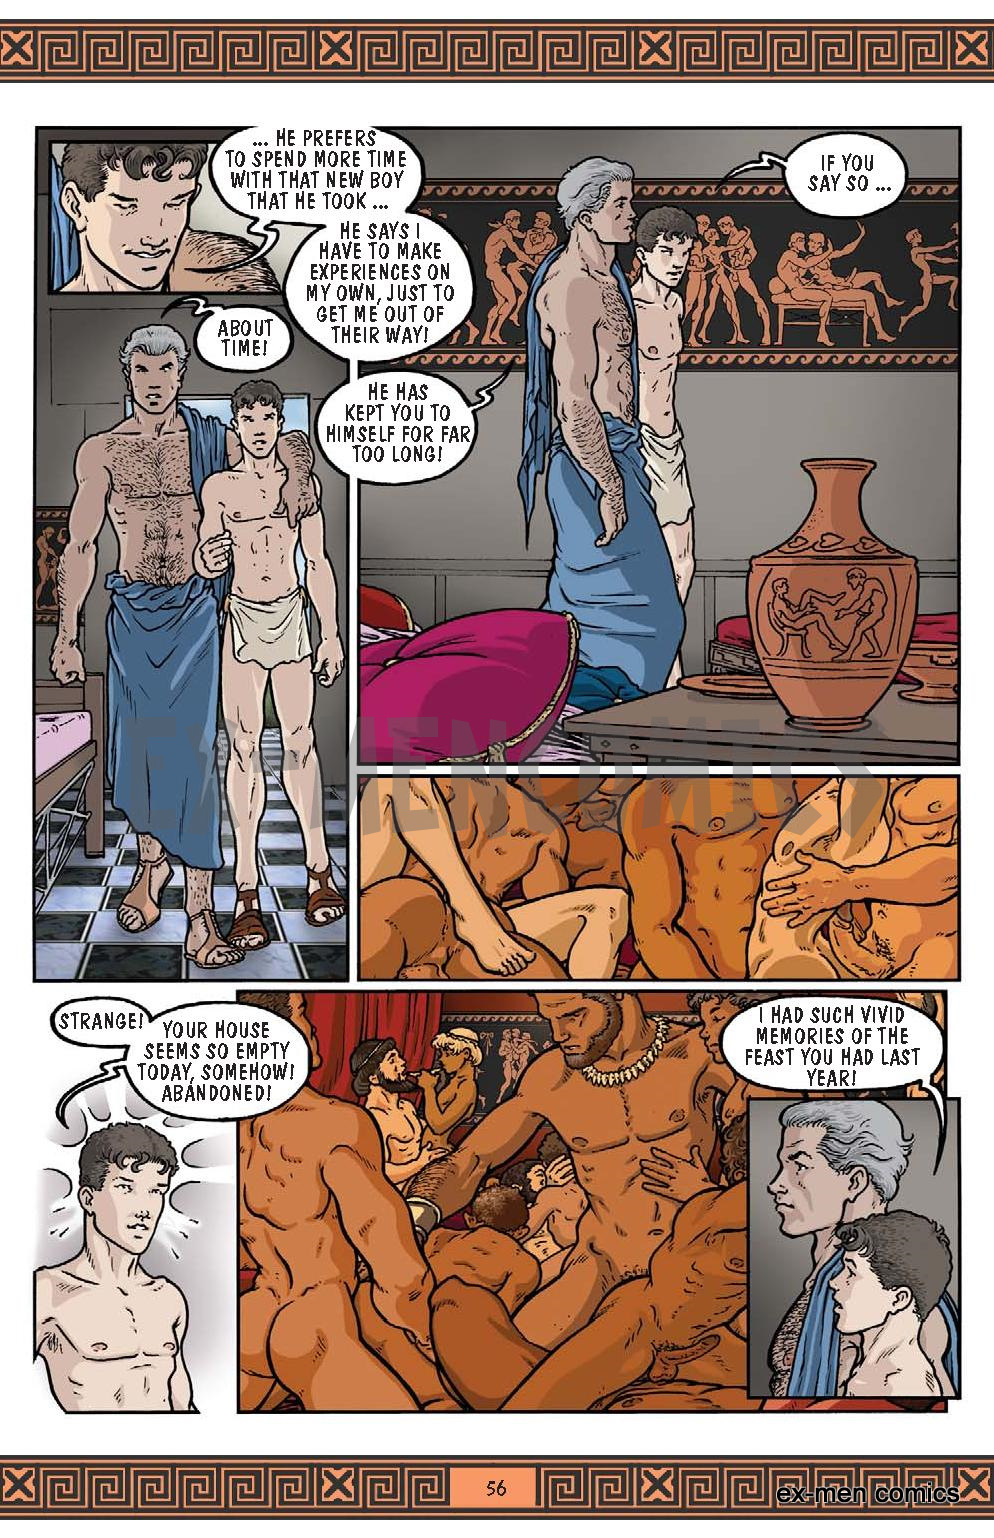 Ancient greek gay sex tube first time he 10